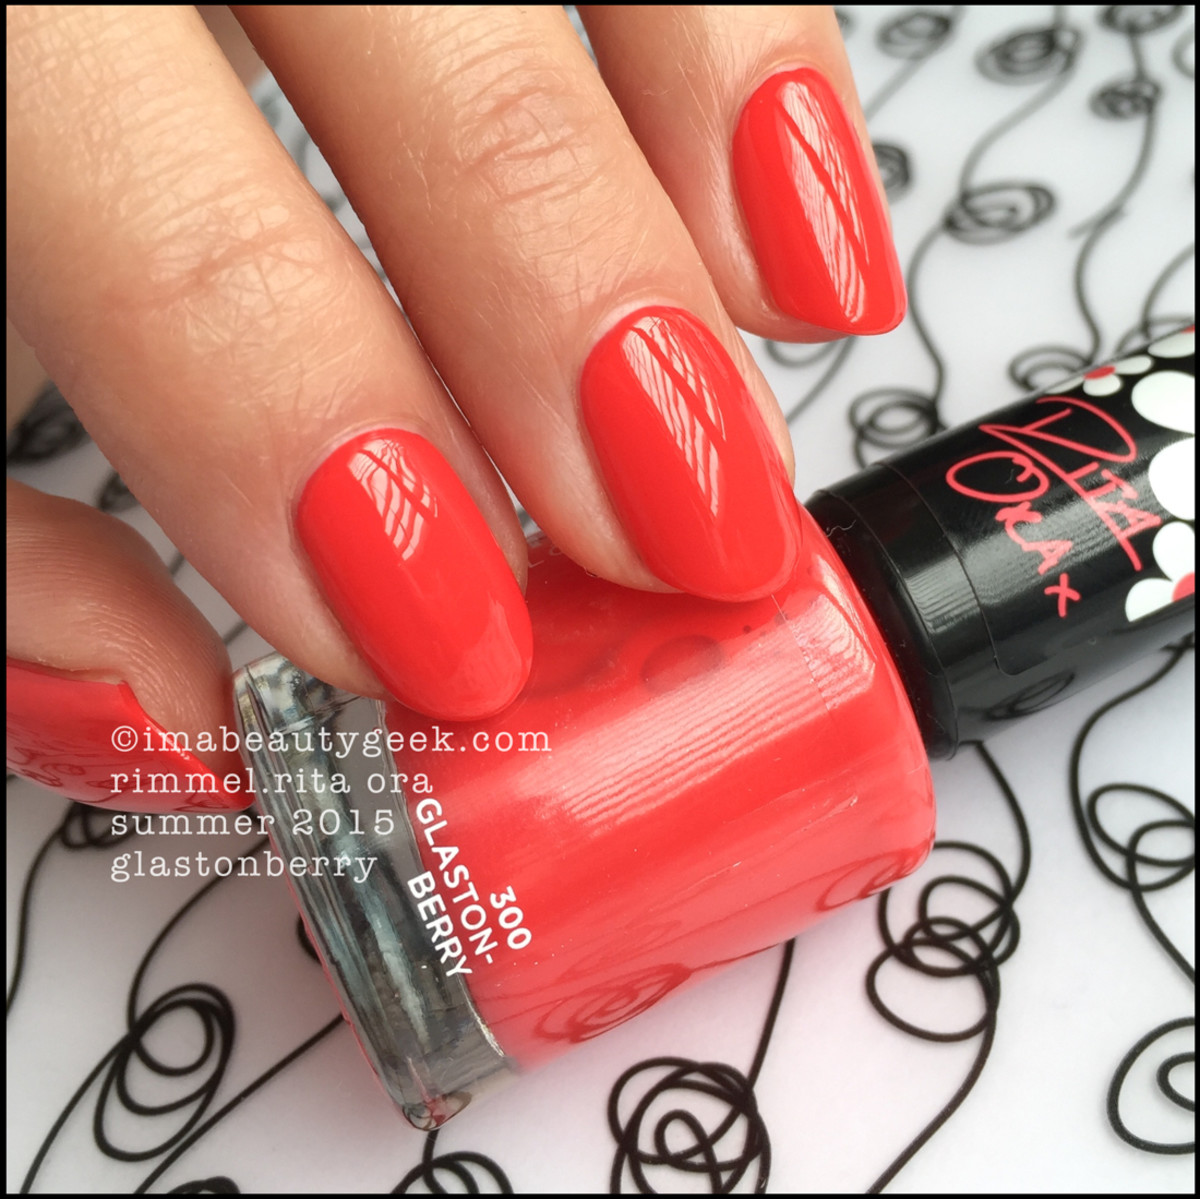 Rimmel Rita Ora Nail Polish Glastonberry Swatch